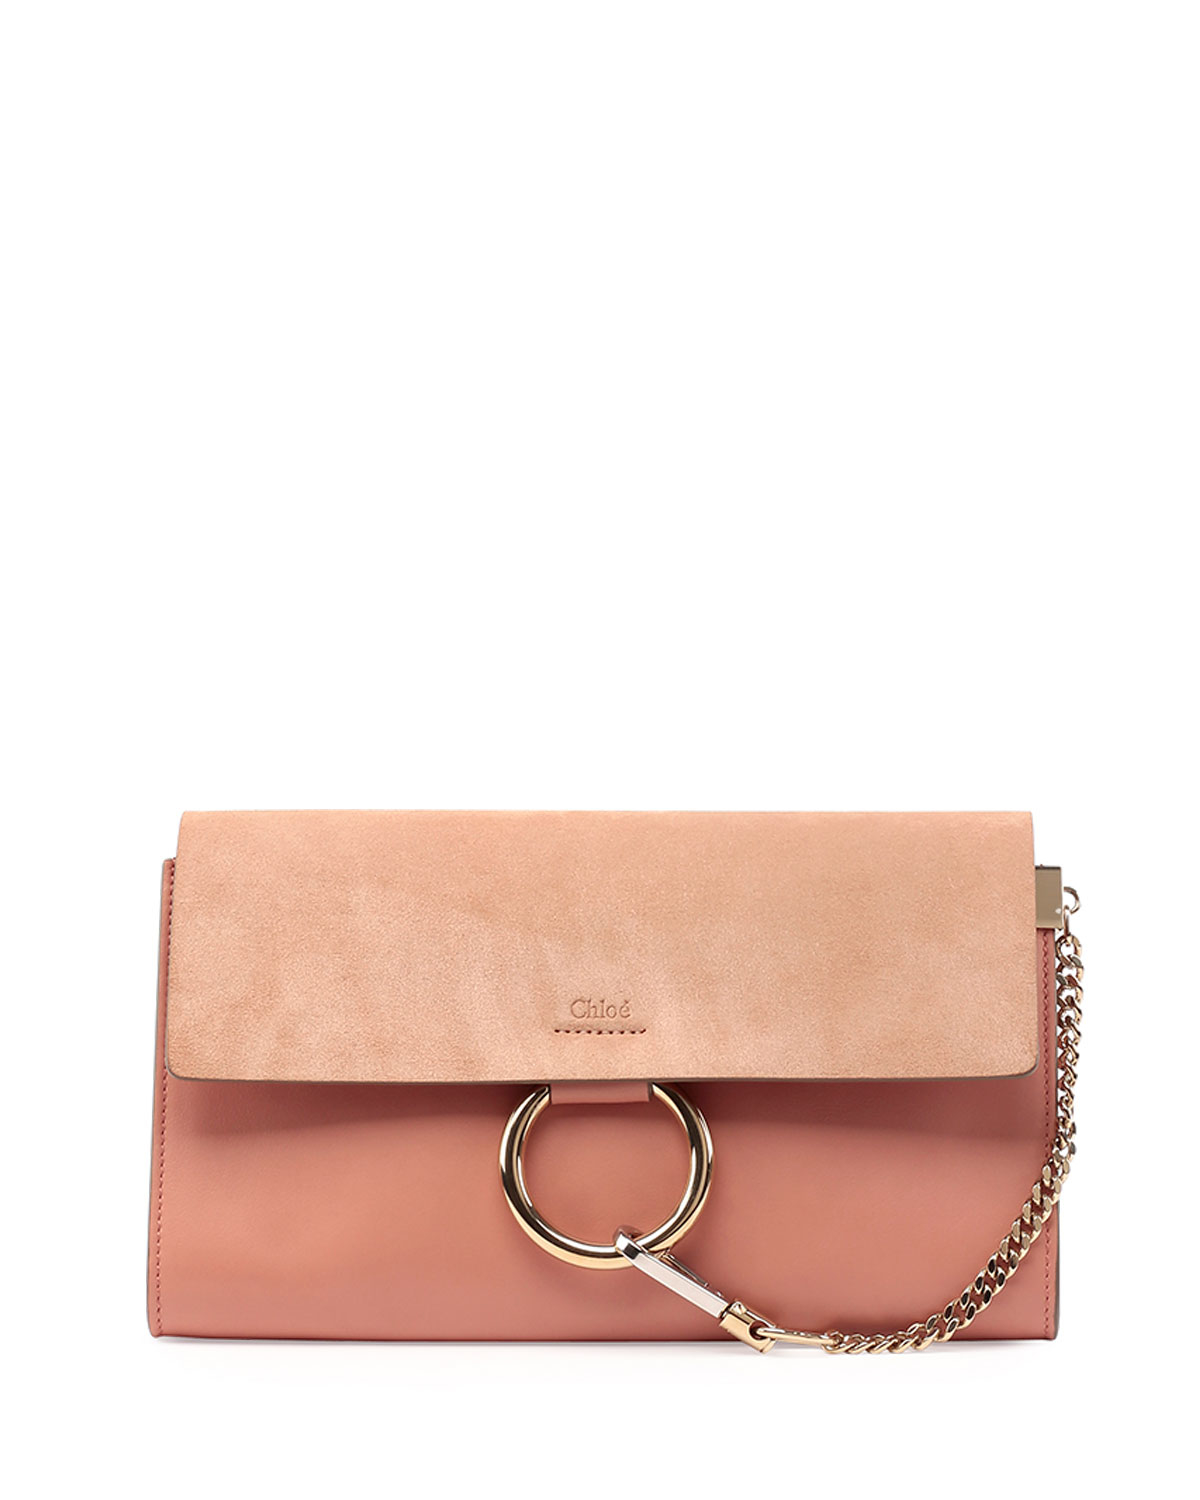 clhoe handbags - Chlo�� Faye Leather & Suede Clutch Bag in Orange | Lyst